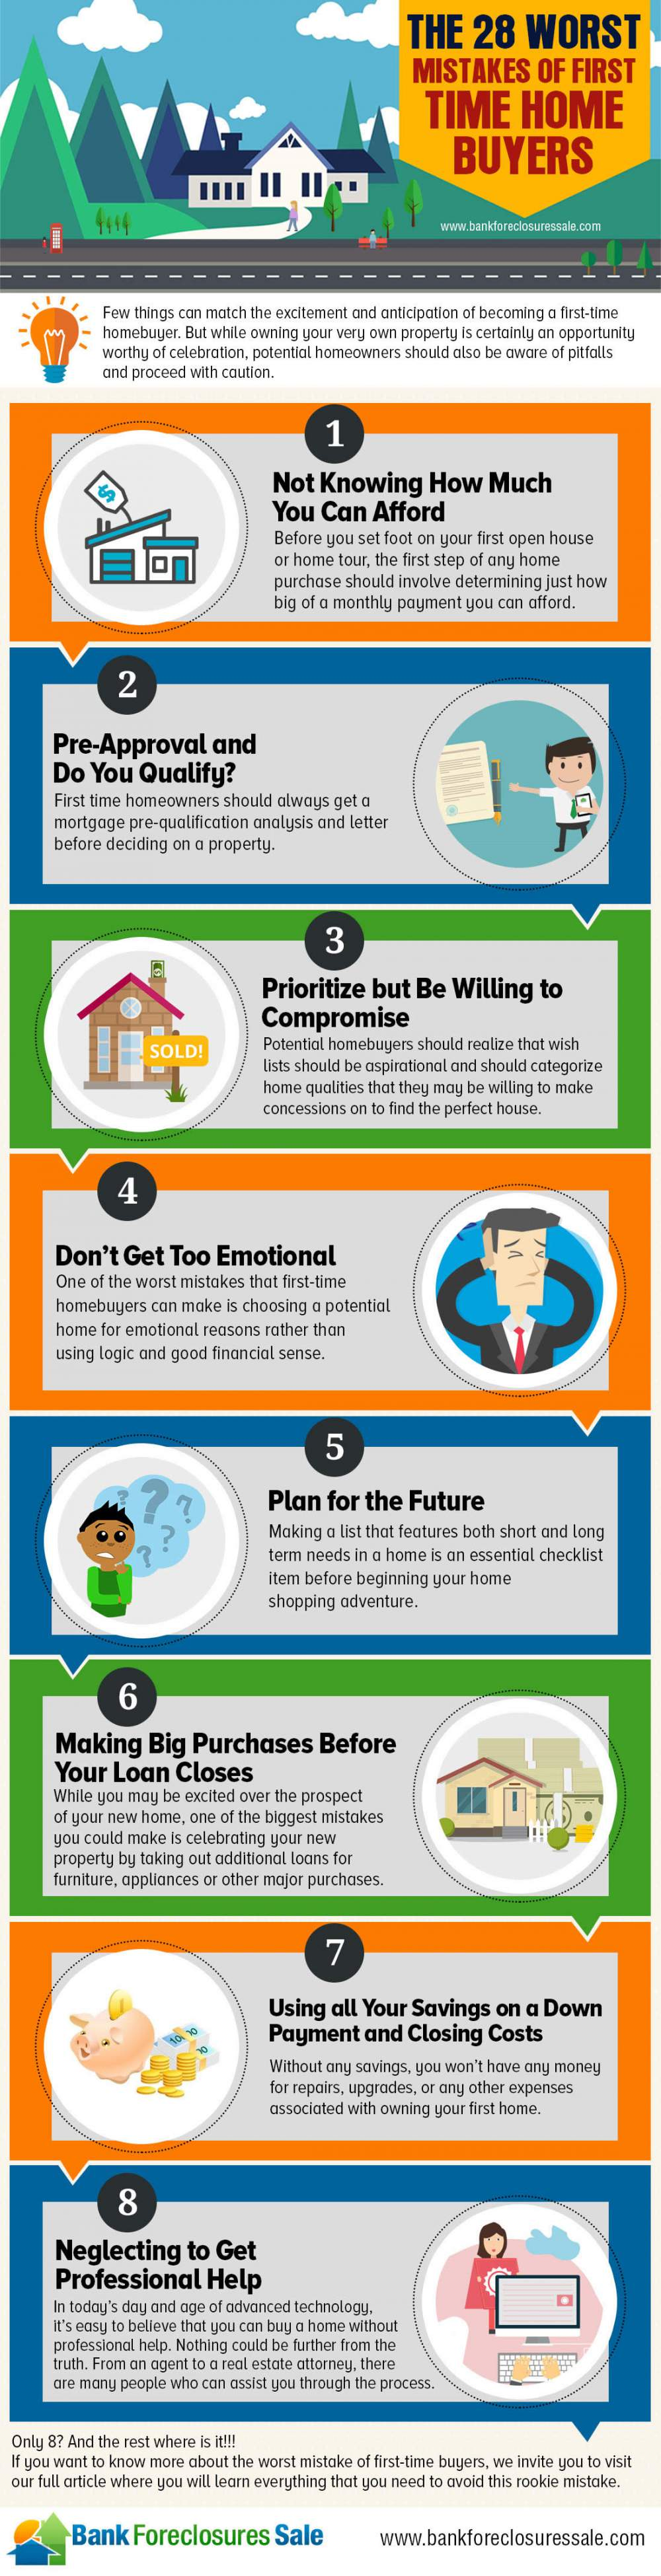 Home Buyers Mistakes